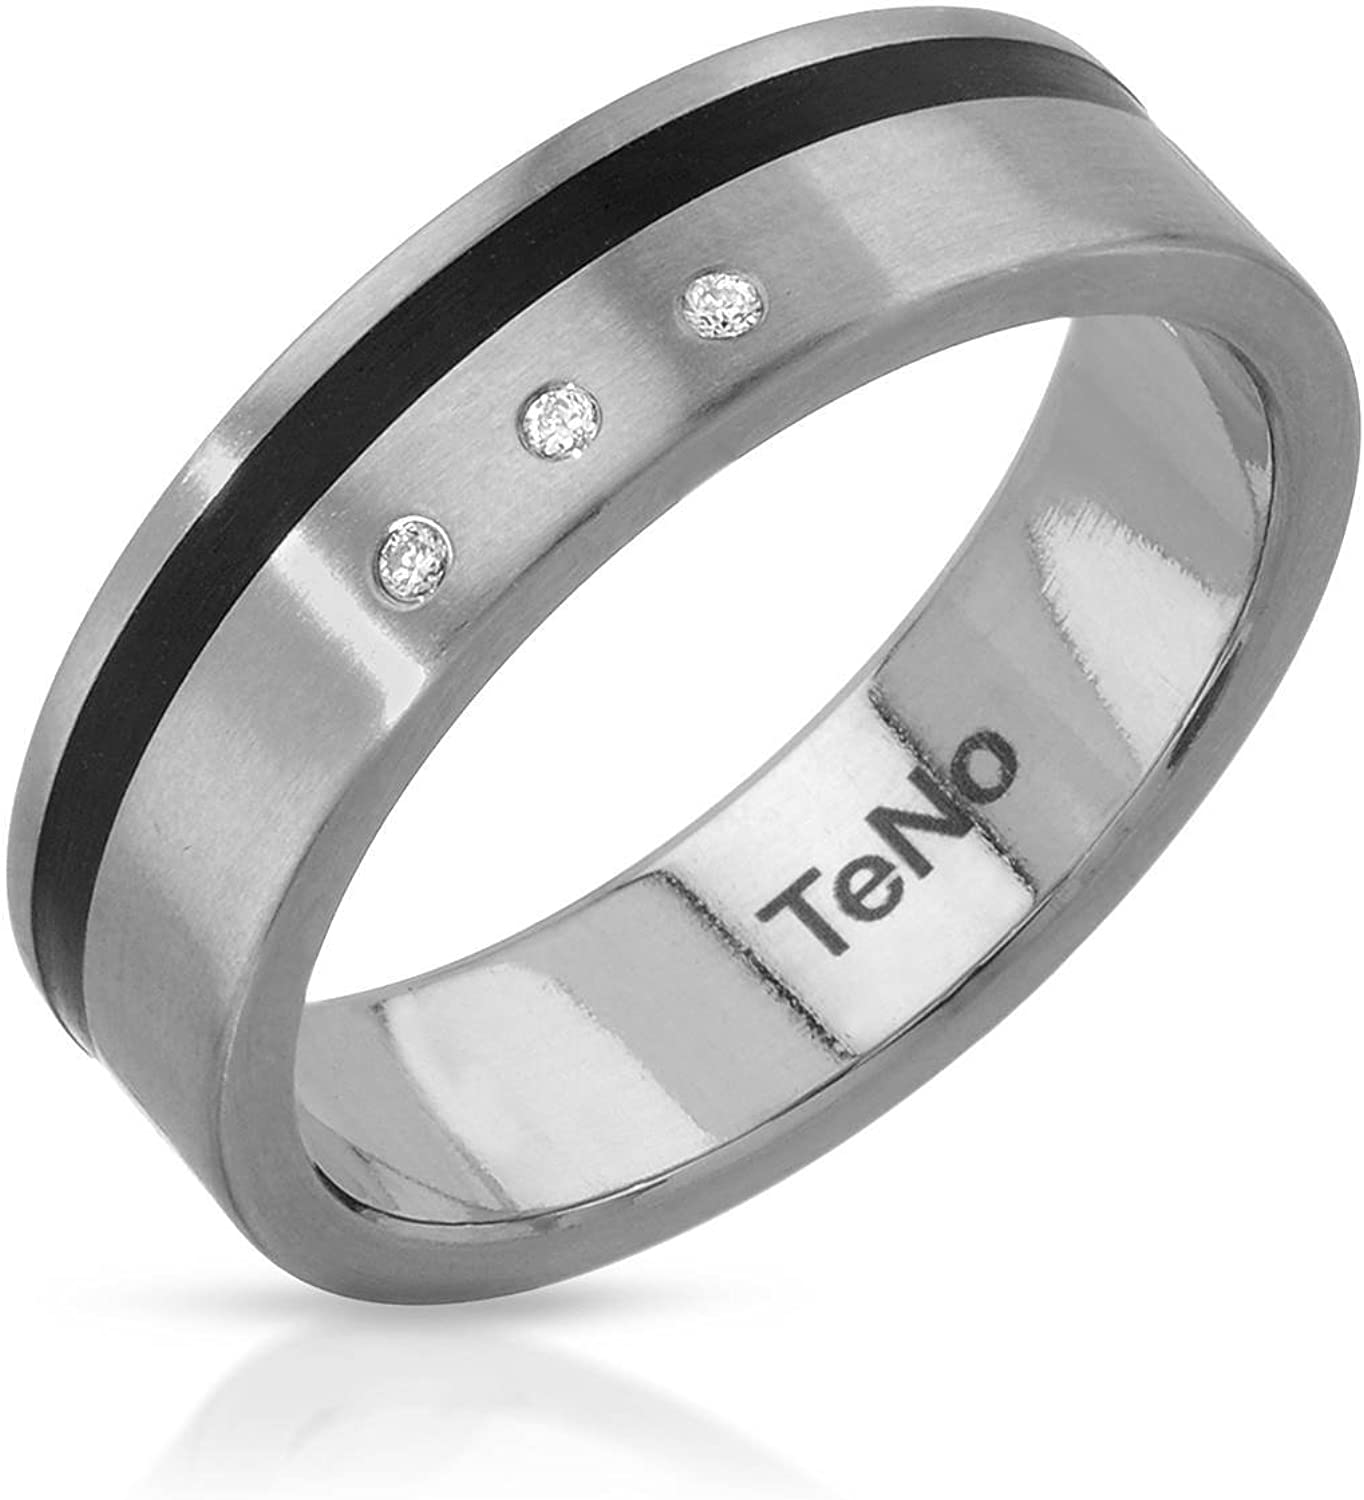 Teno Stainless Steel 0.03 CTW Color F-G, VS2 Diamond Band Ring.